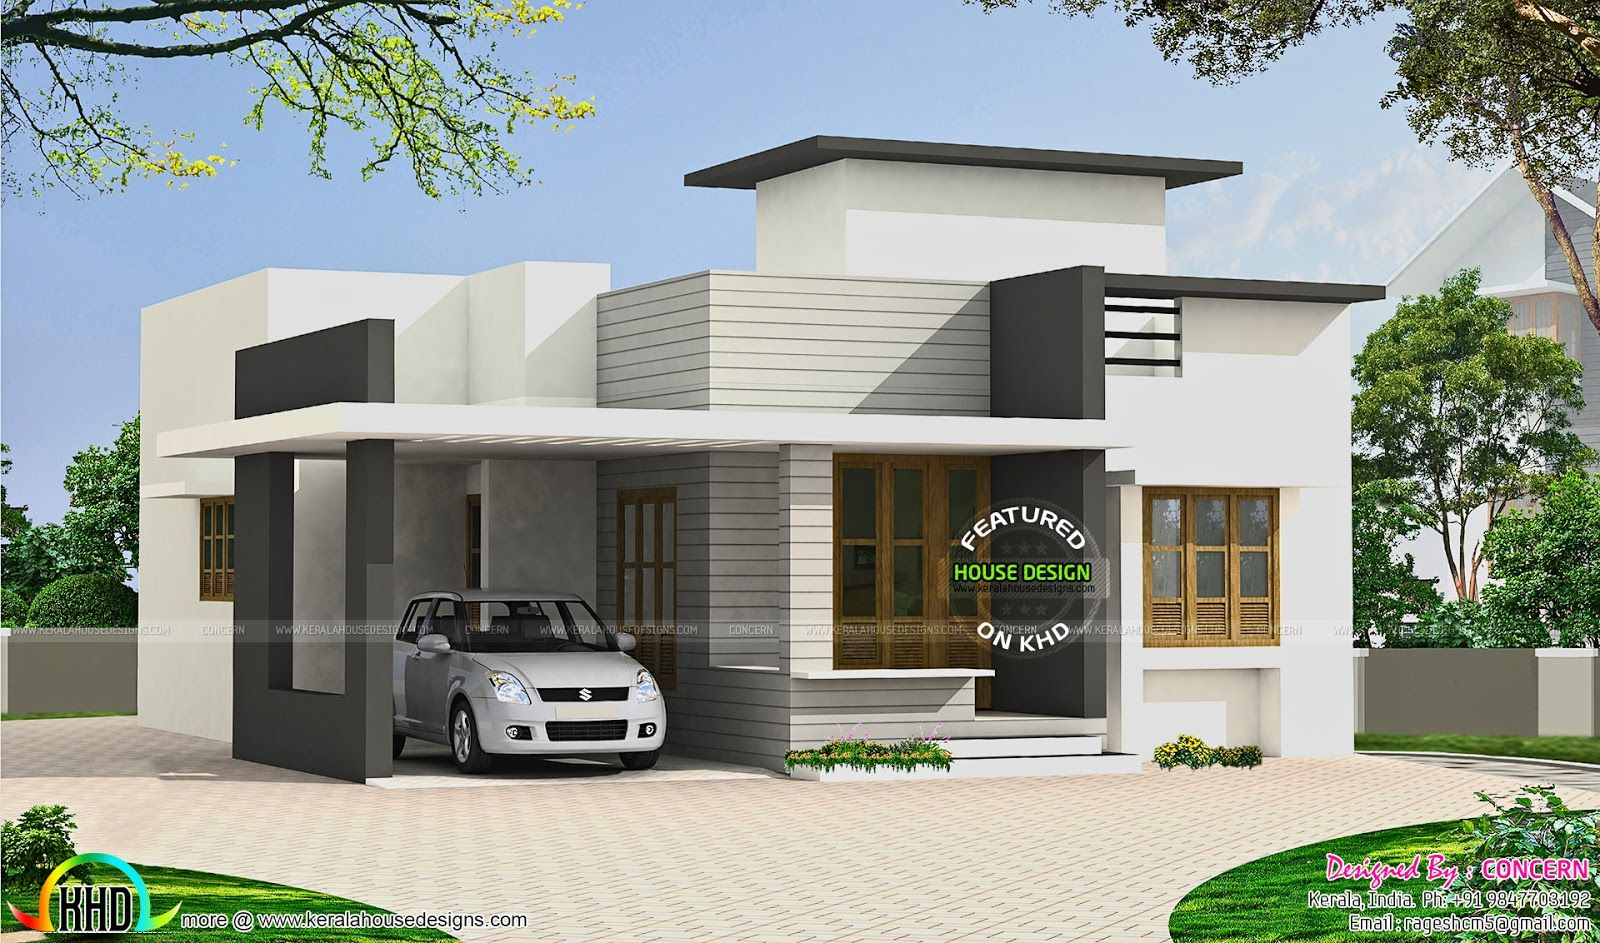 Image Result For Parking Roof Design In Single Floor Kerala House Also Best  Plans Images On